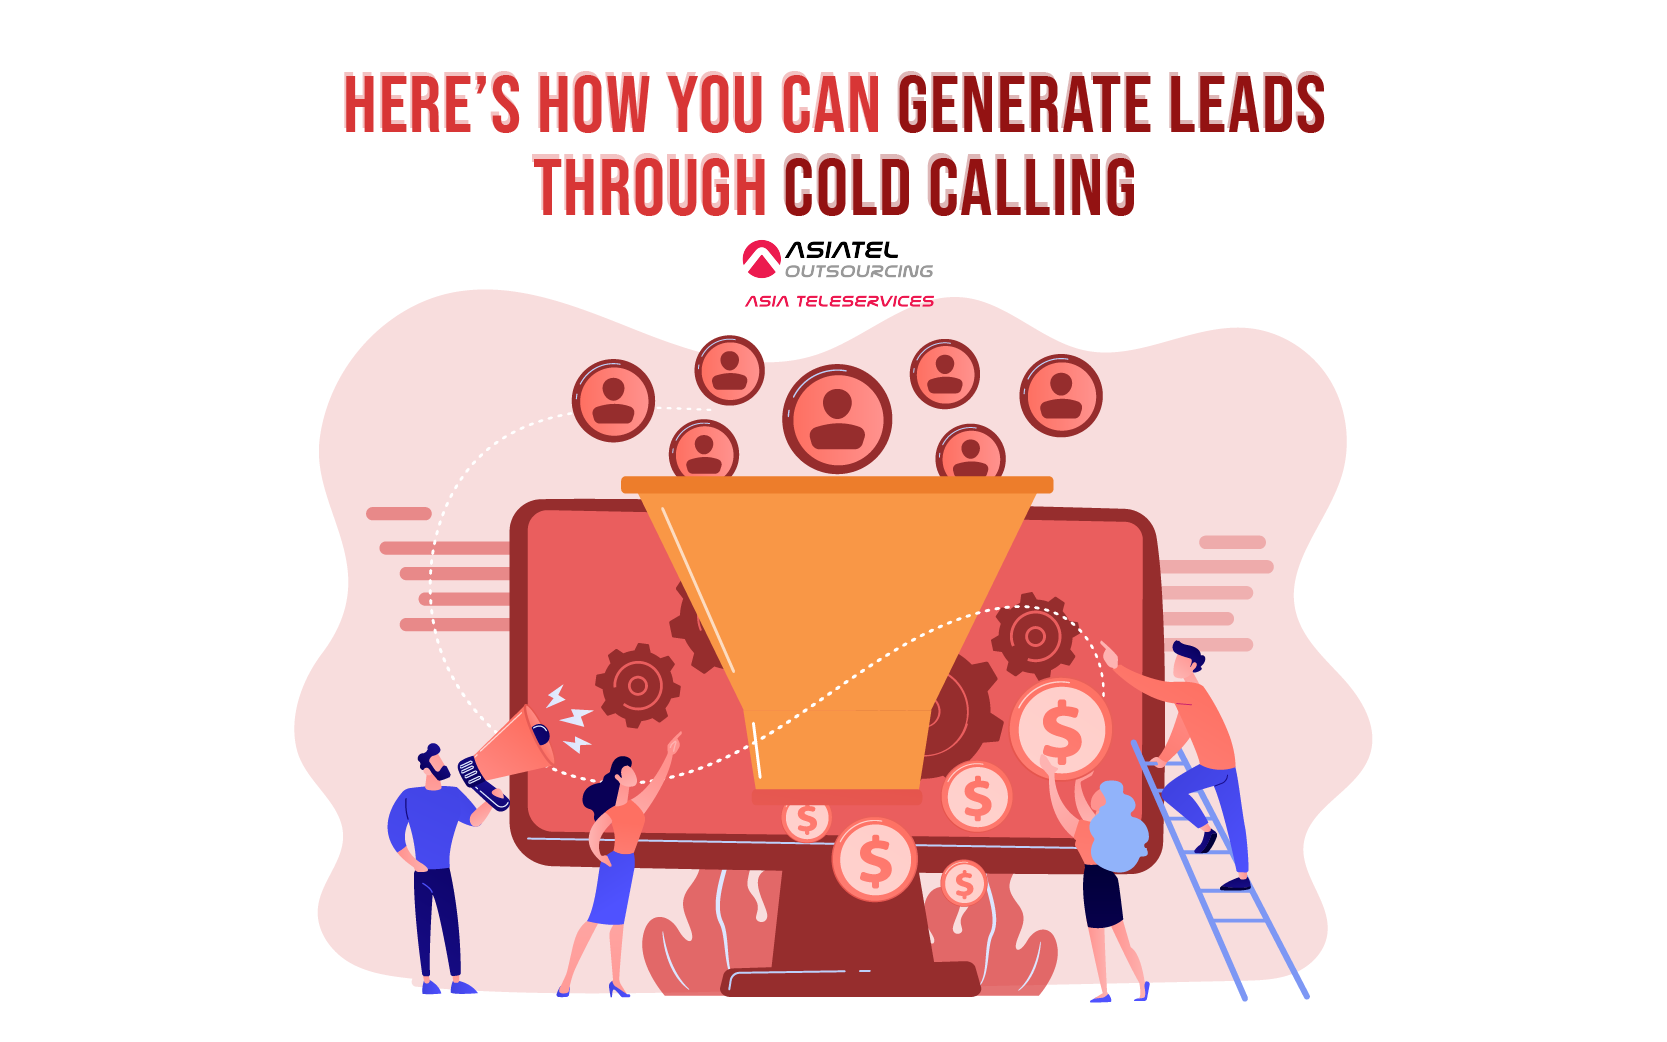 Here's How You Can Generate Leads Through Cold Calling